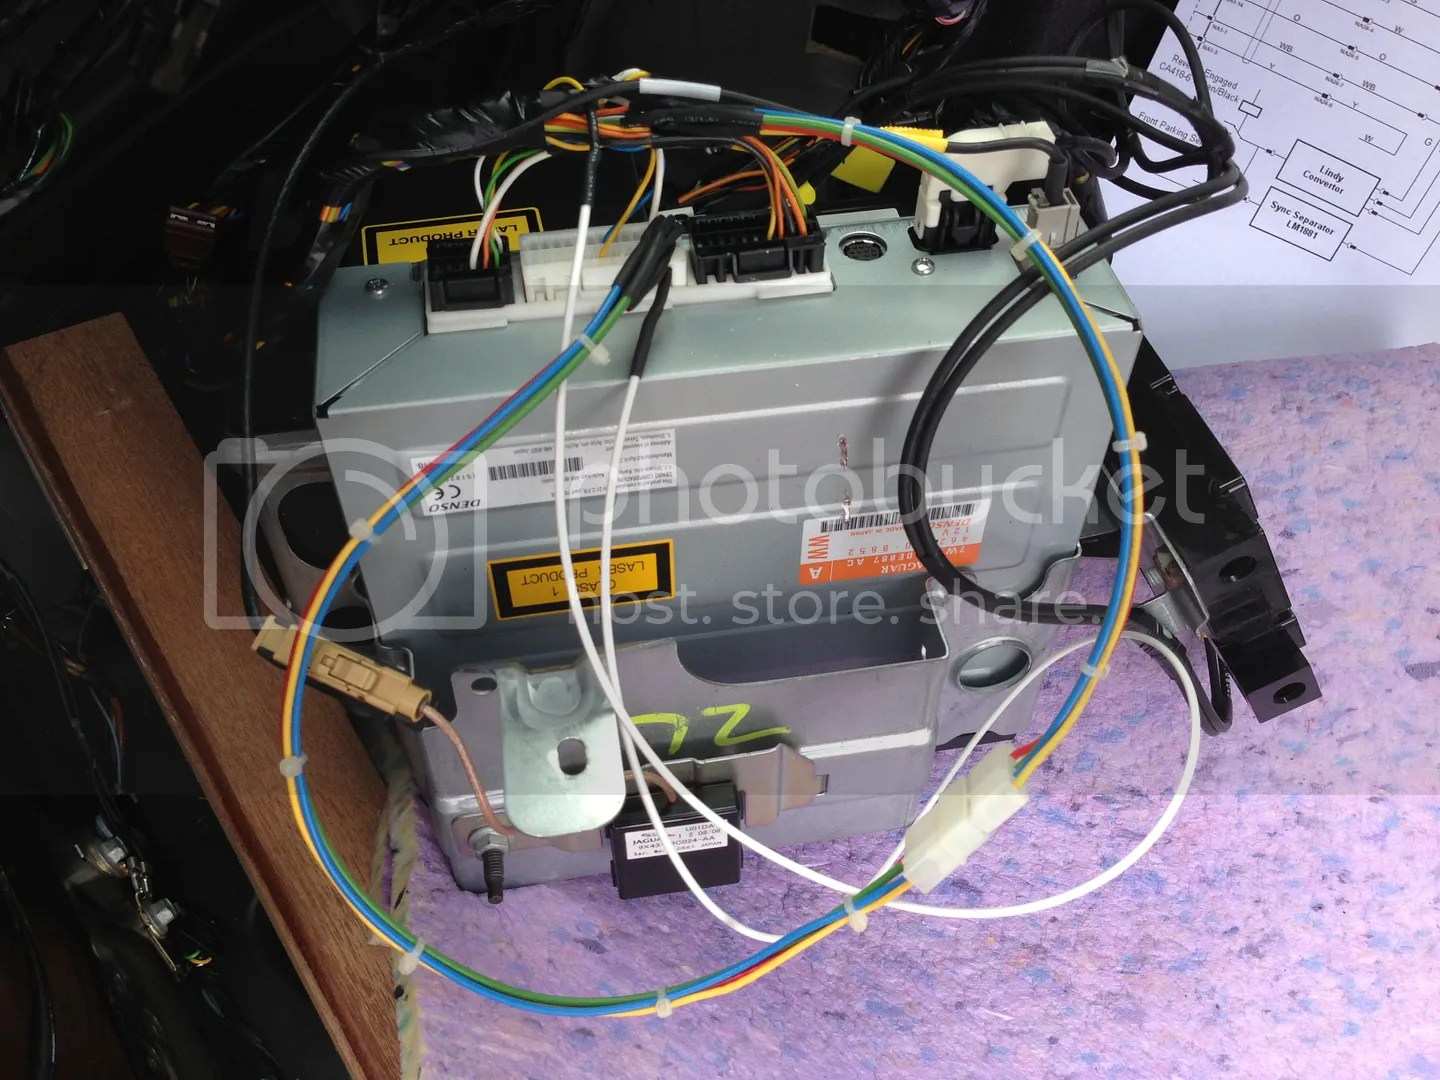 hight resolution of reinstall satnav subassembly taking care to ensure cables are not trapped between cases brackets and chassis secure the co ax removed earlier to allow